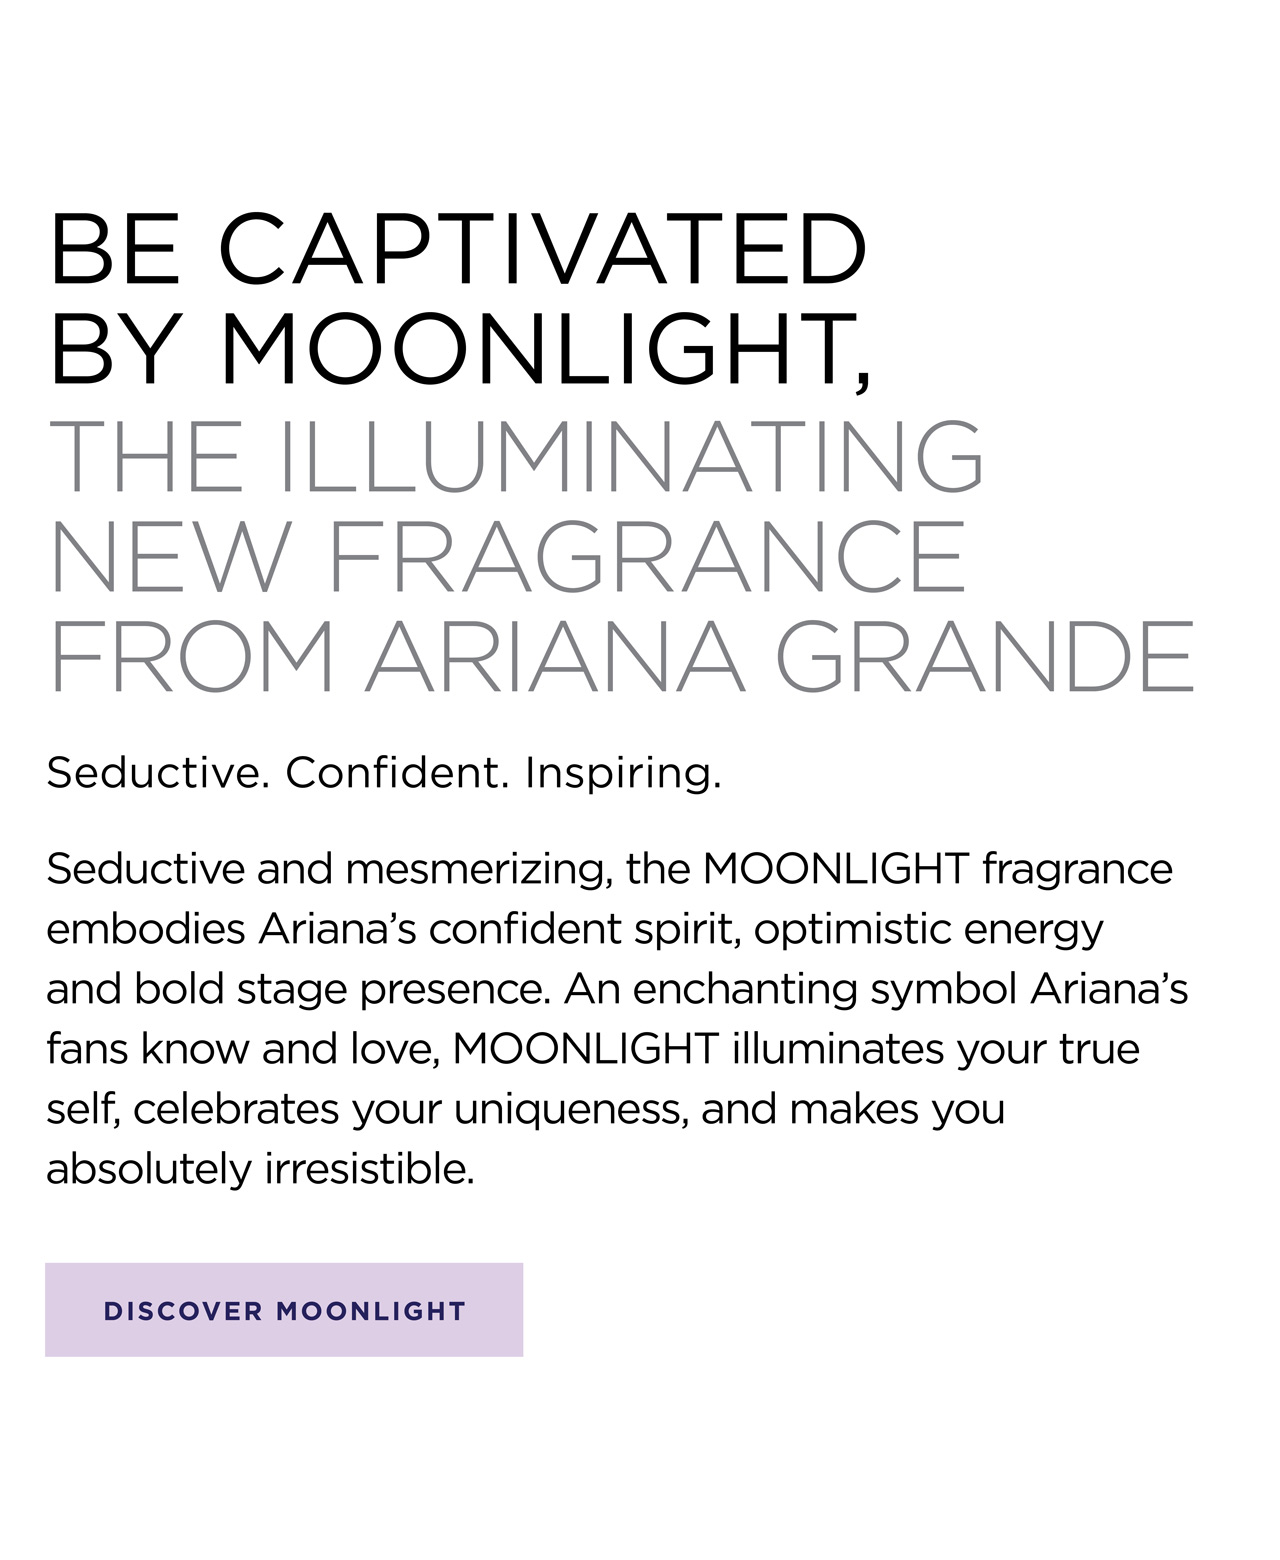 Be captivated by moonlight, the illuminating new fragrance from Ariana Grande